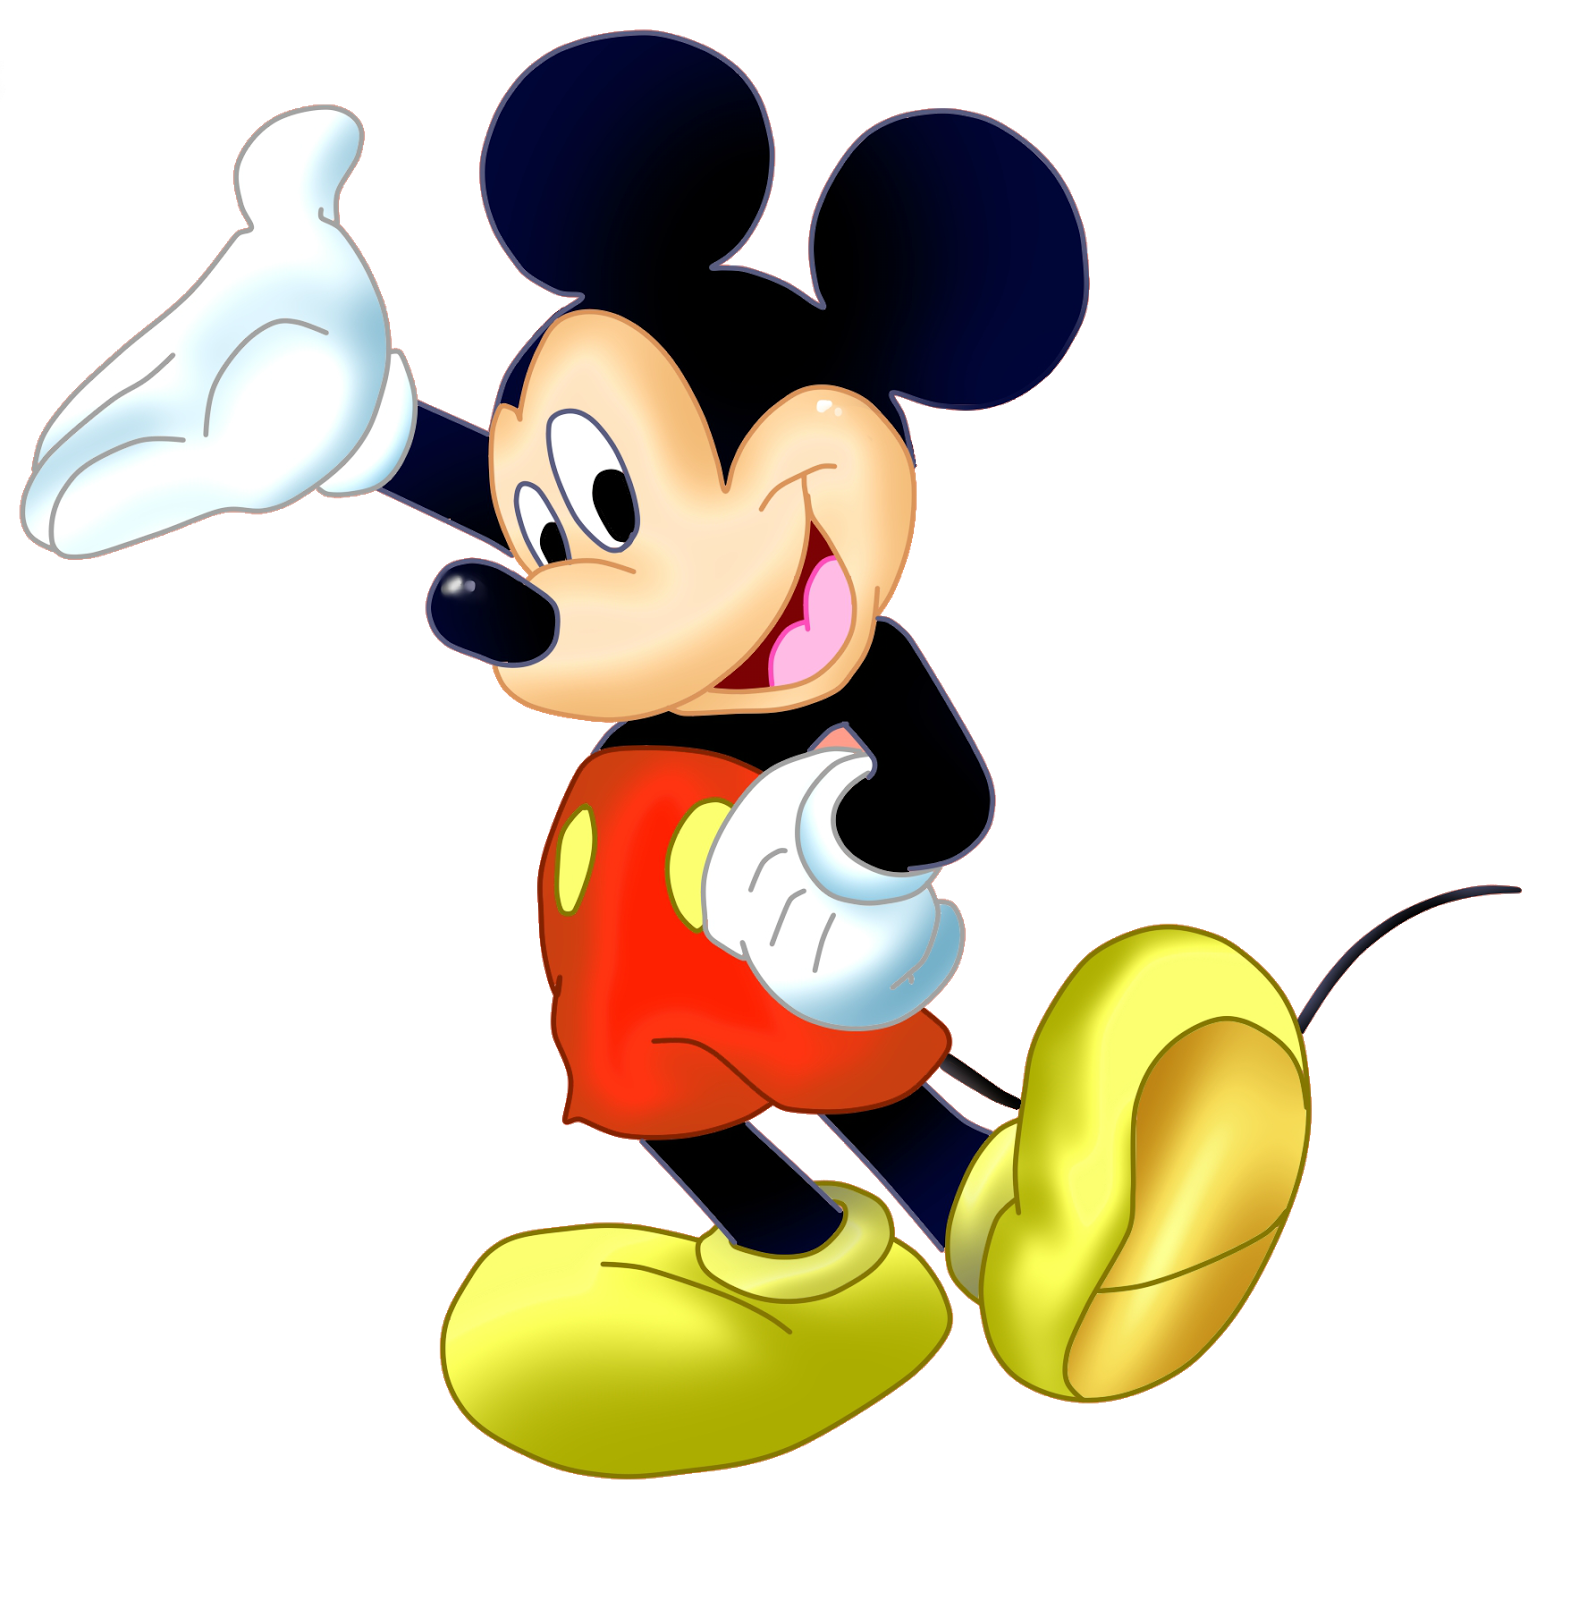 Cartoon Characters Png : Wizard is oz most influential fictional characters